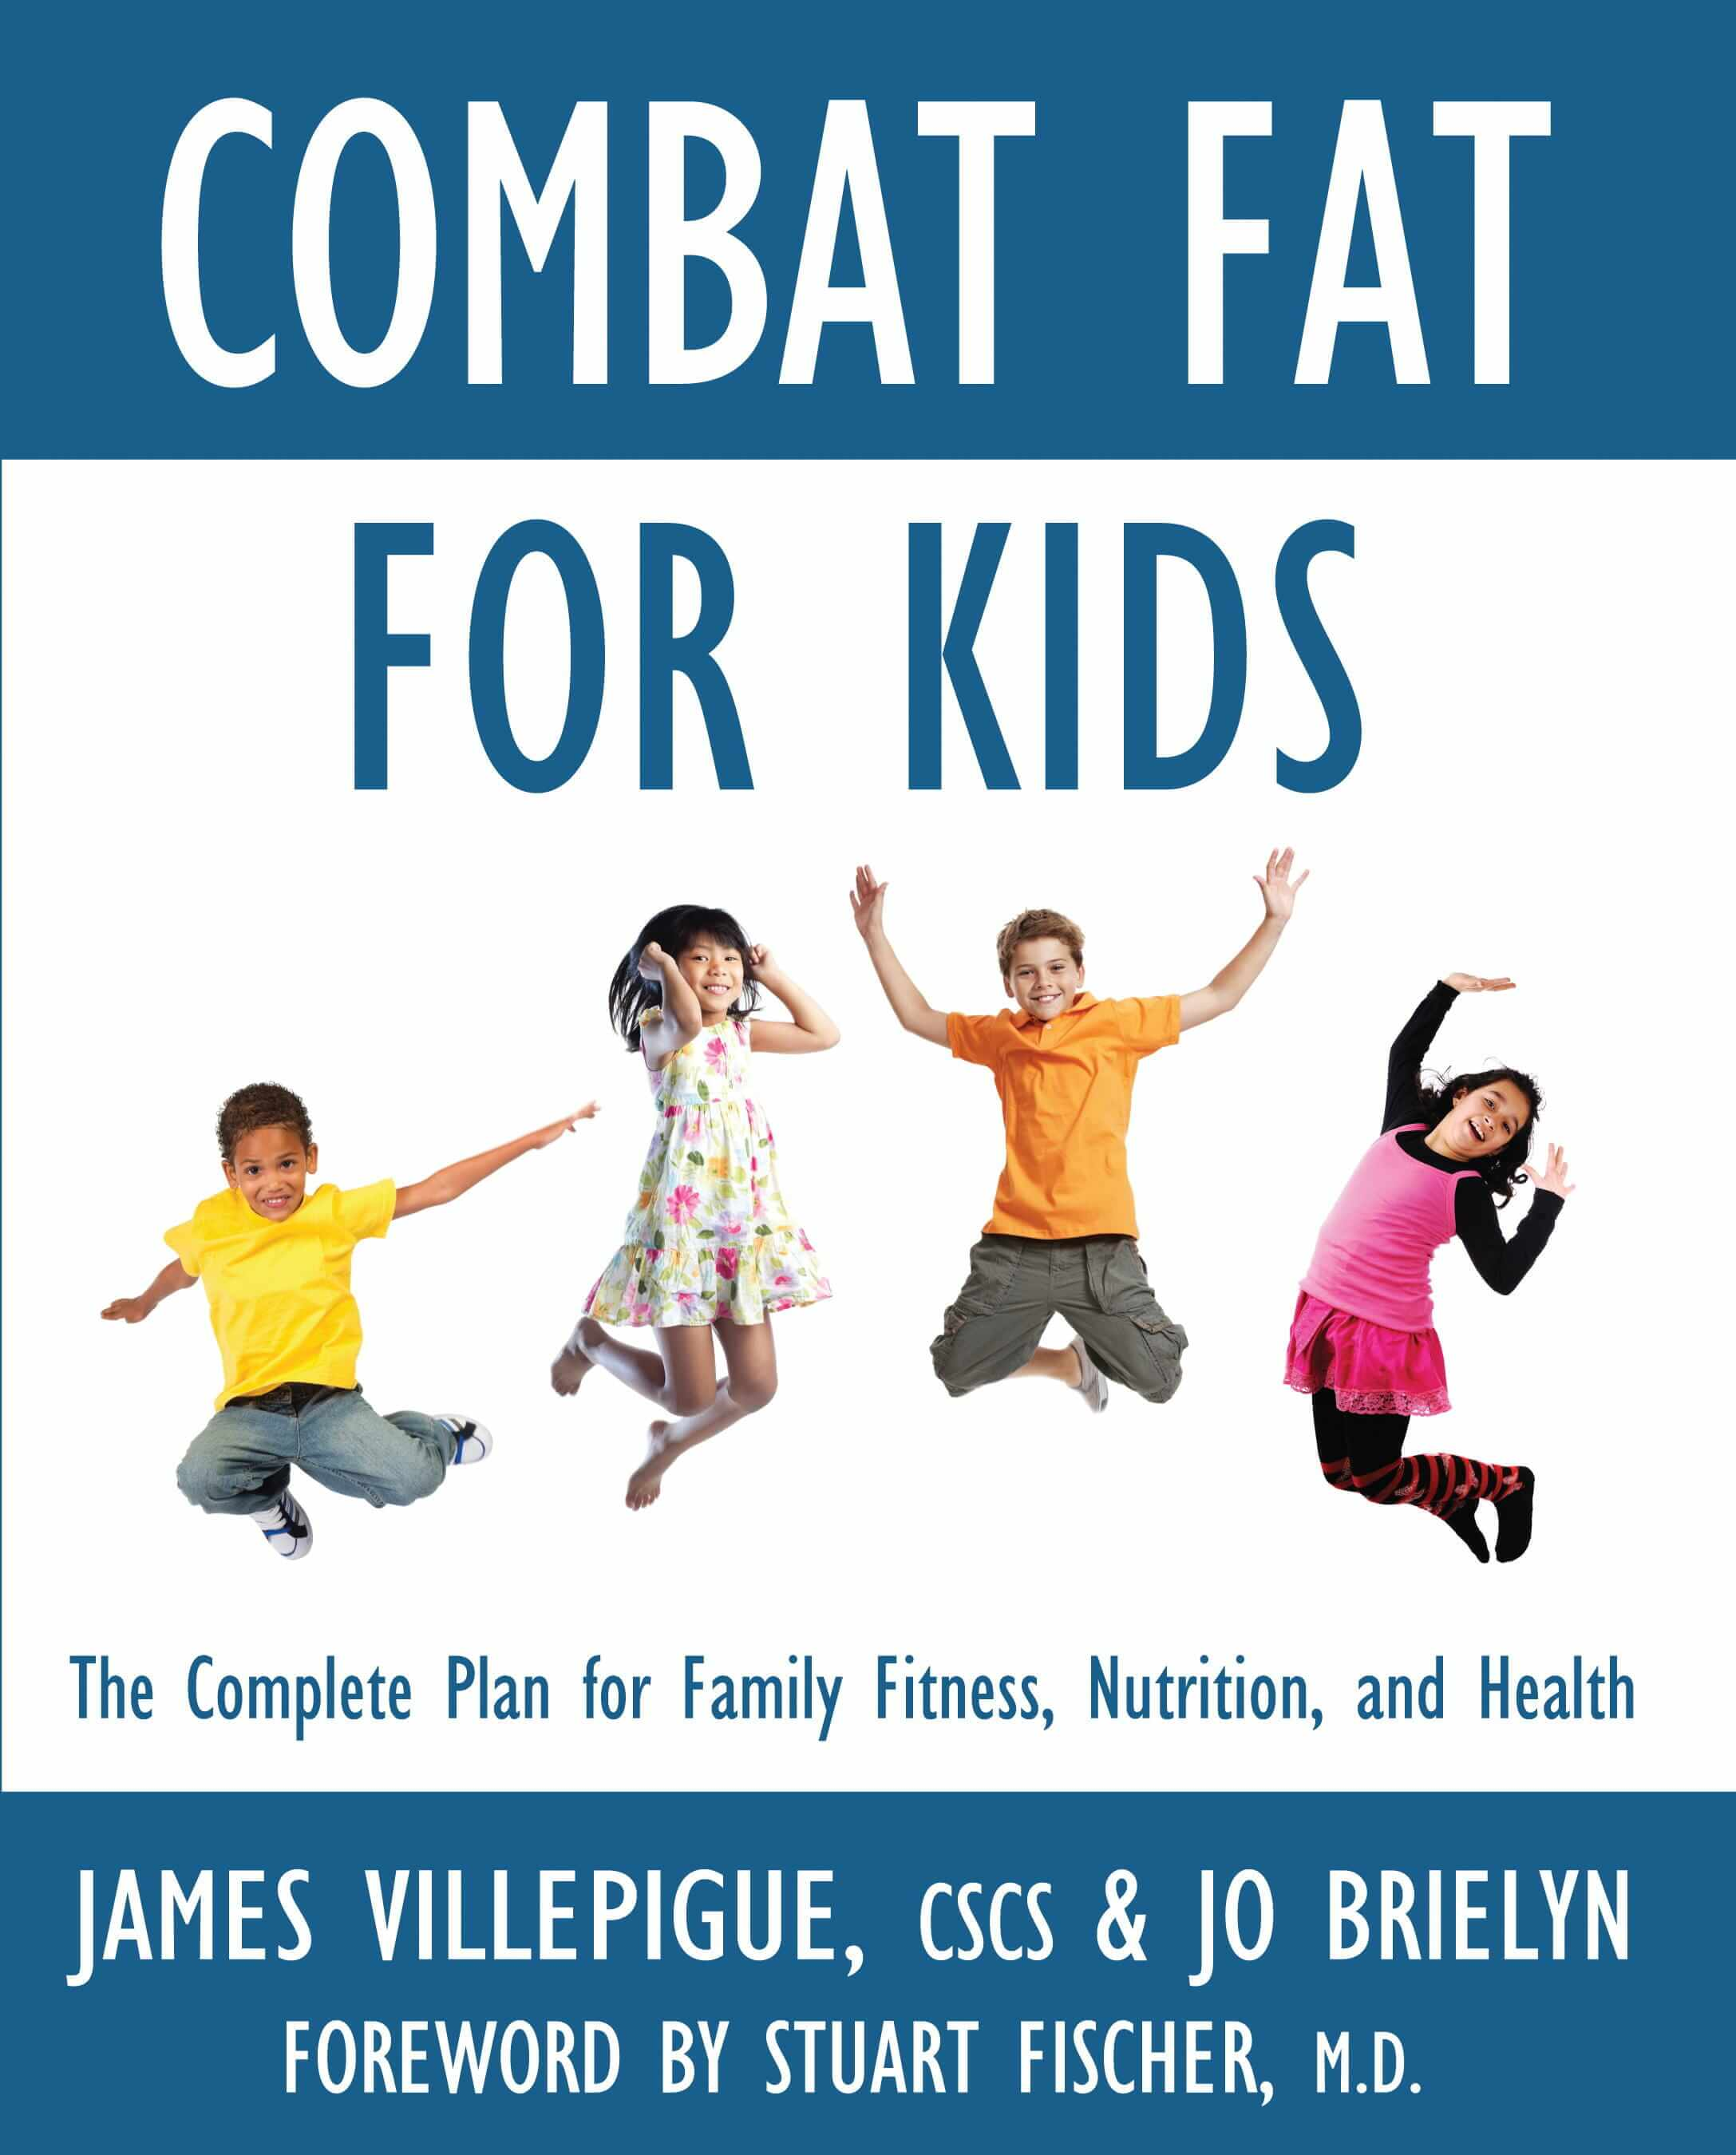 Cornbread Crusted Turkey recipe from Combat Fat for Kids